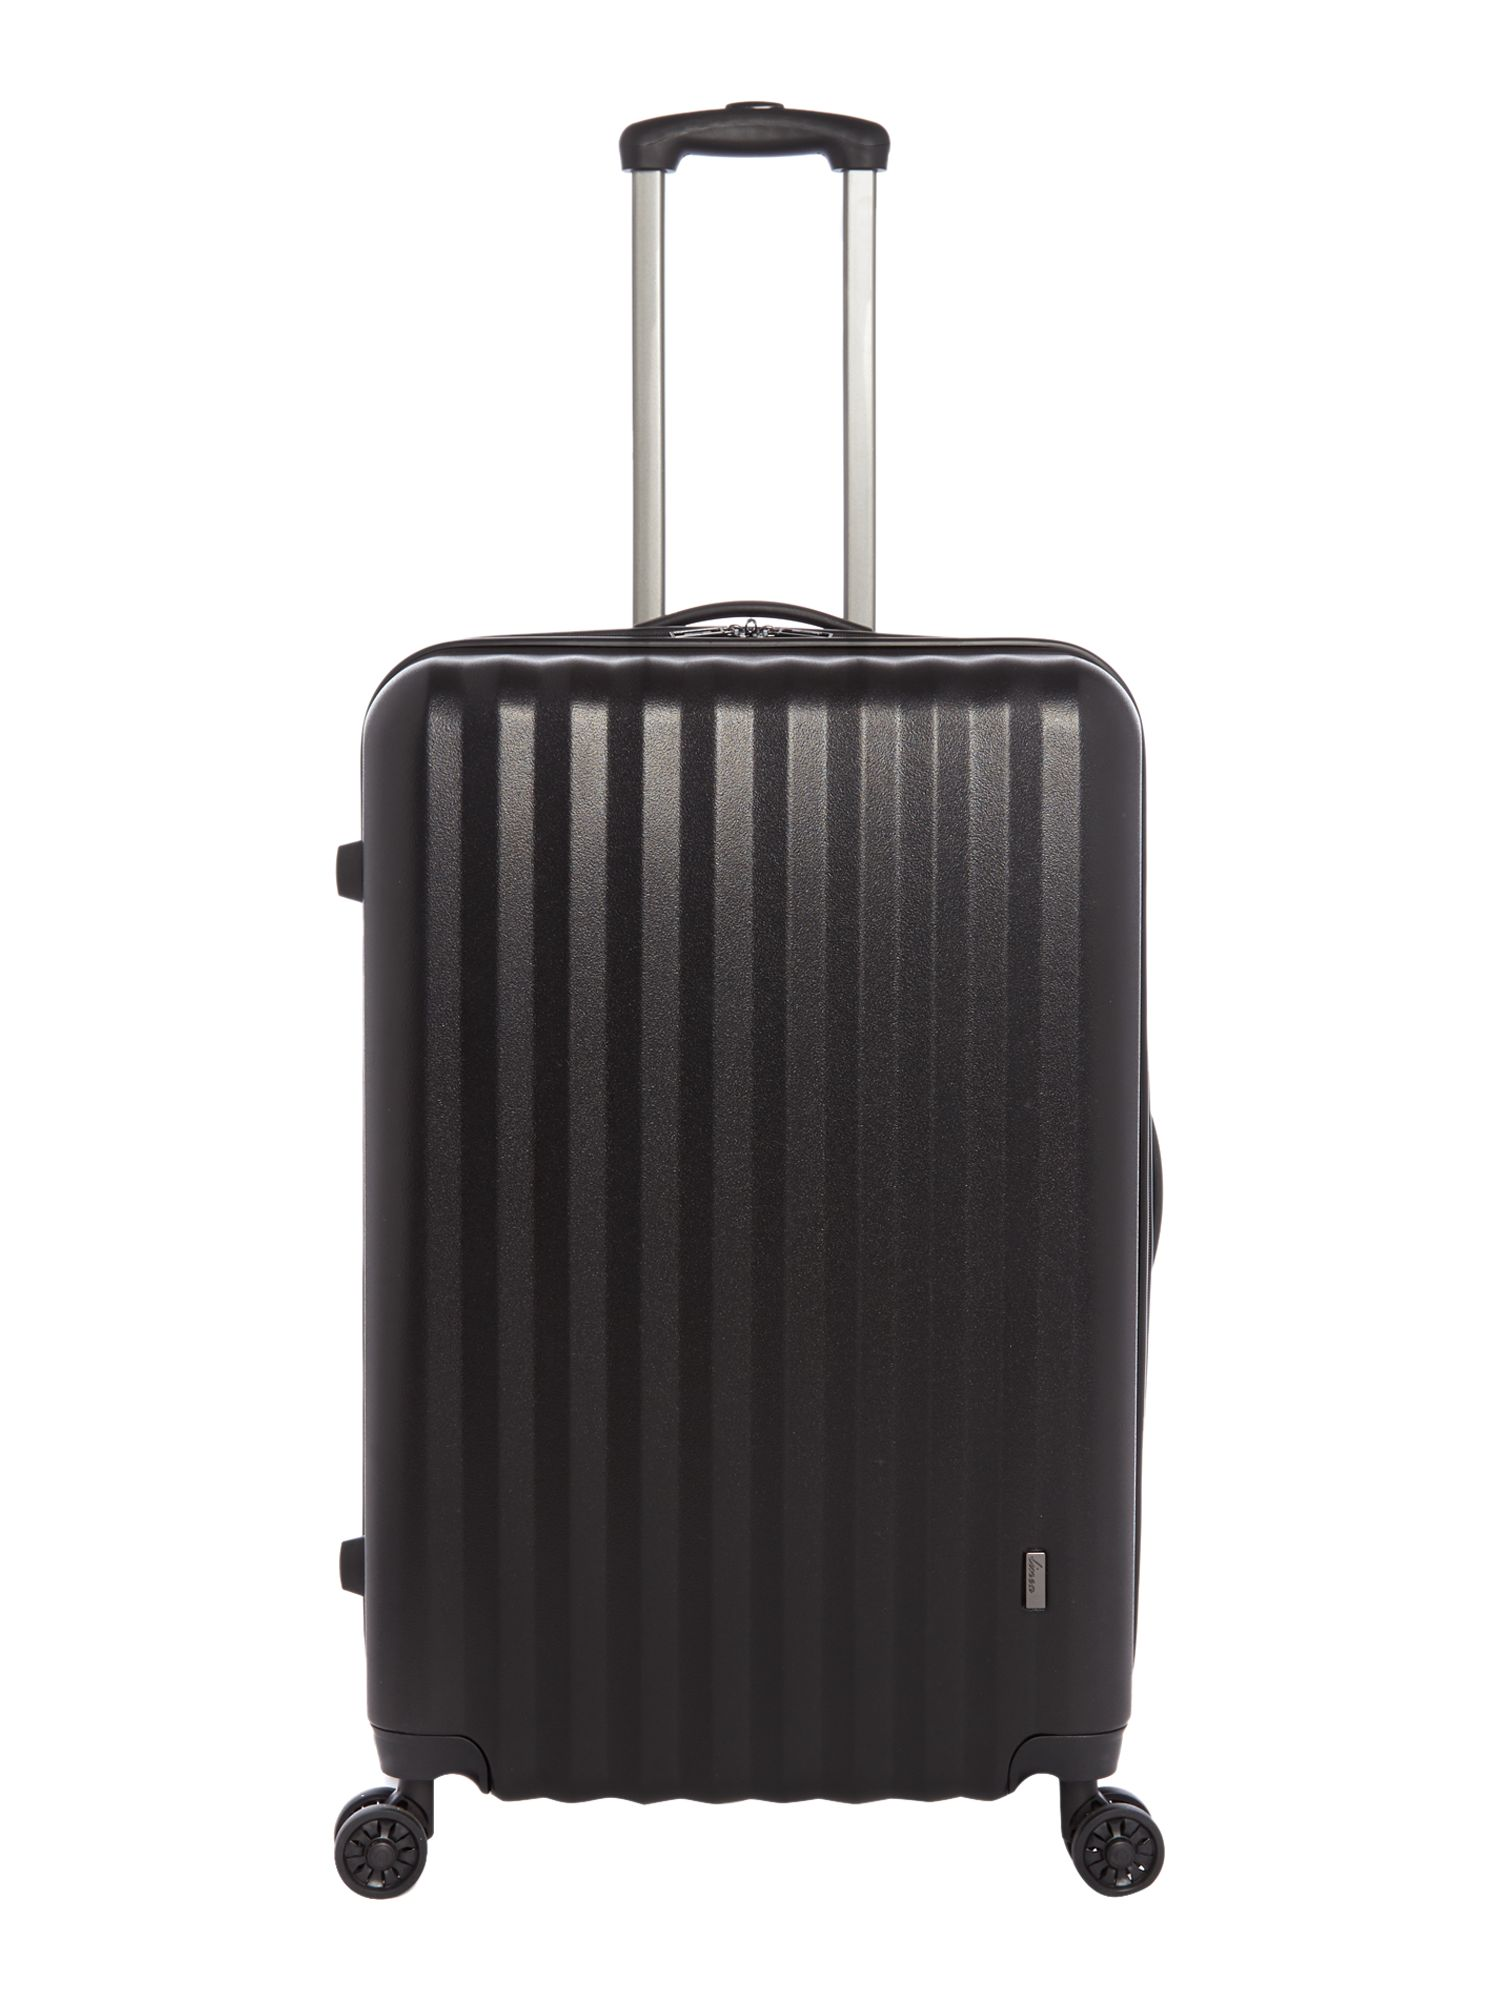 Linea Orba Black Hard 8 Wheel Large Suitcase - House of Fraser